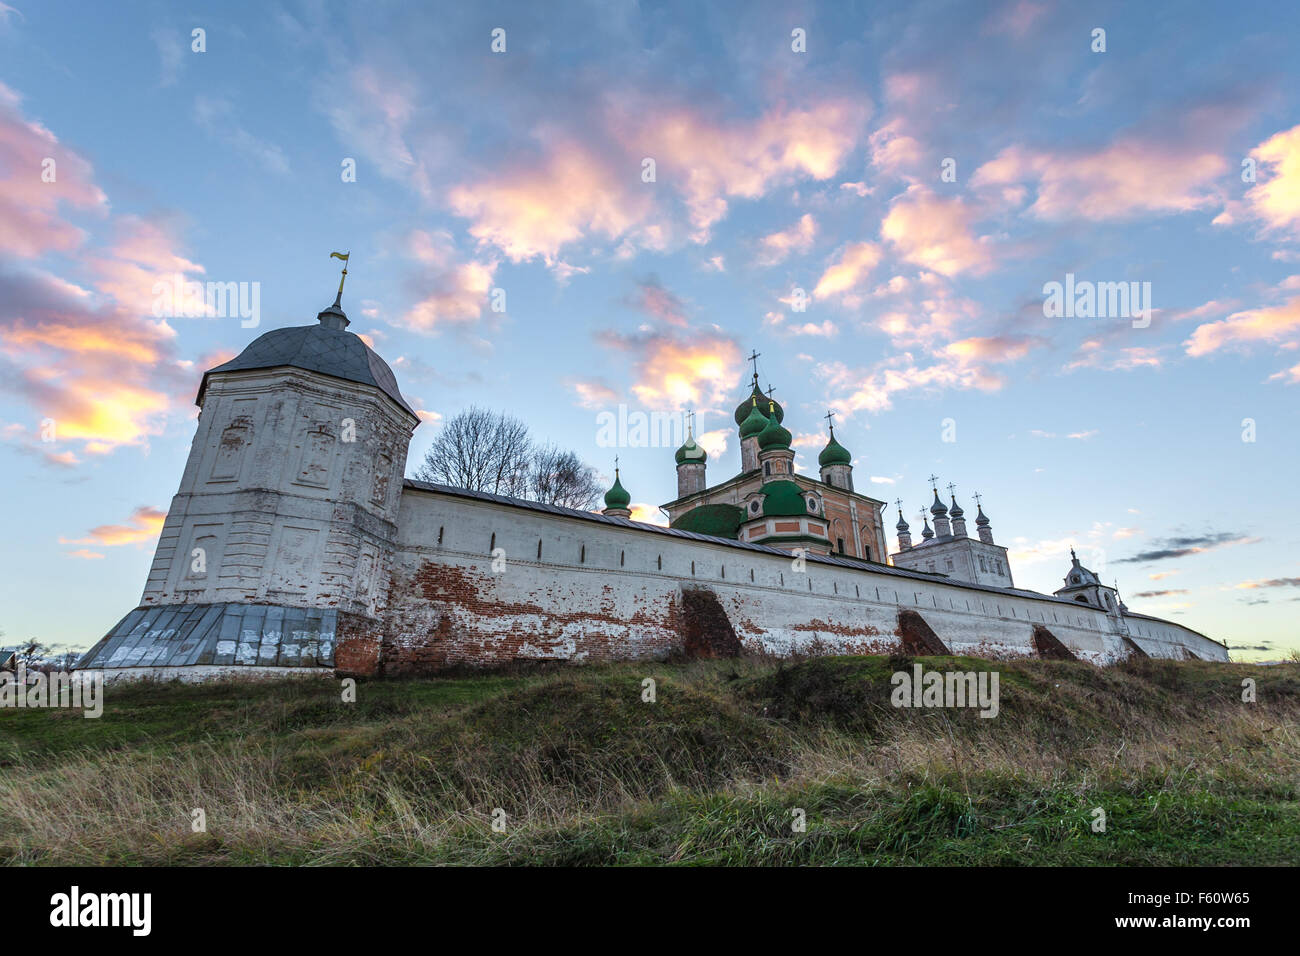 Pereslavl-Zalessky, Russia - November 03, 2015: Goritsky Monastery of Dormition. Look on the Northeast watchtower. - Stock Image